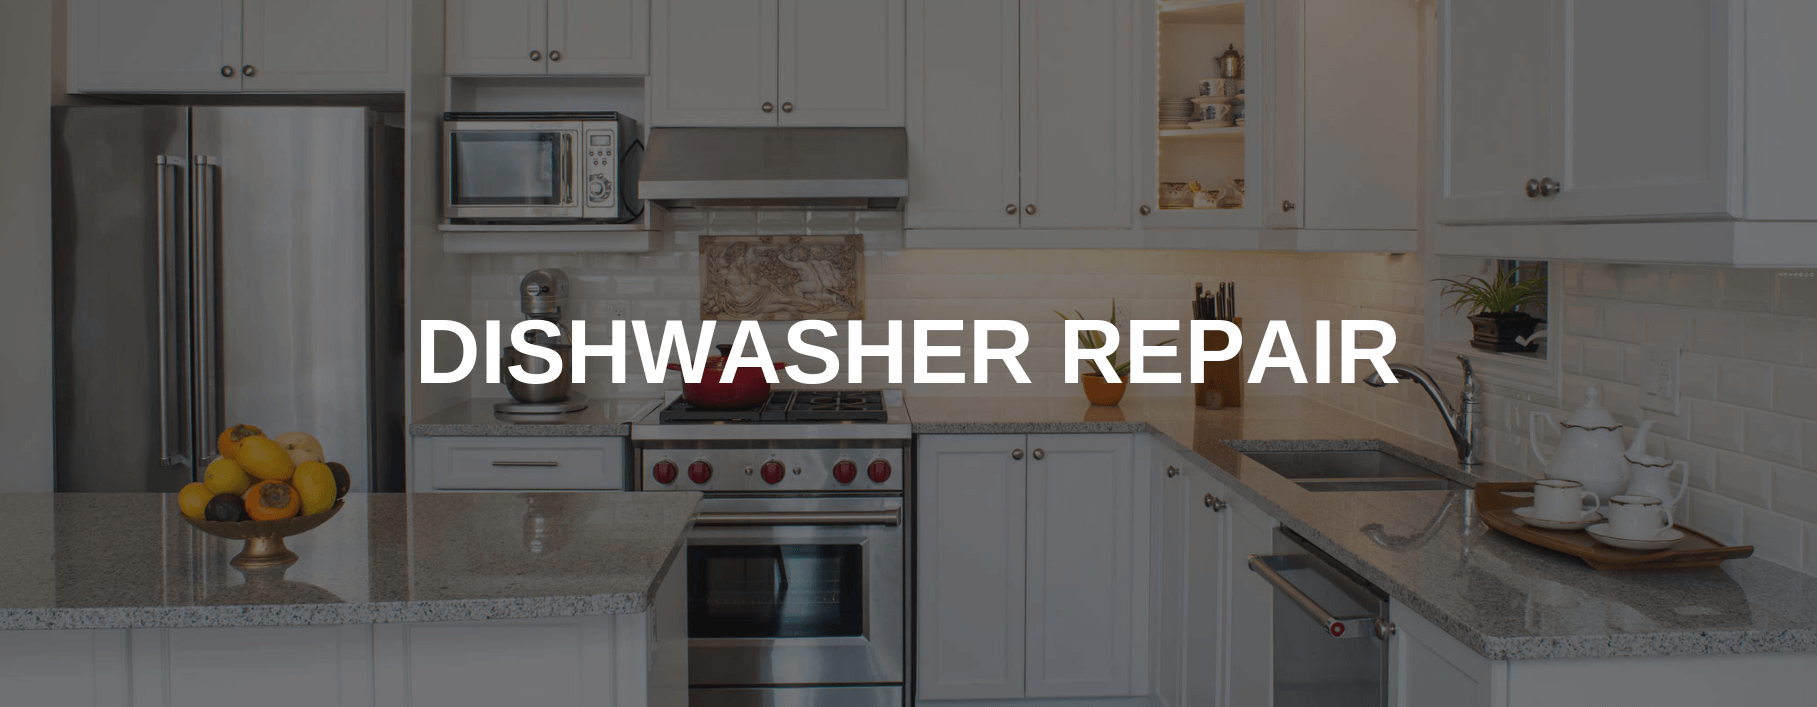 dishwasher repair thousand oaks